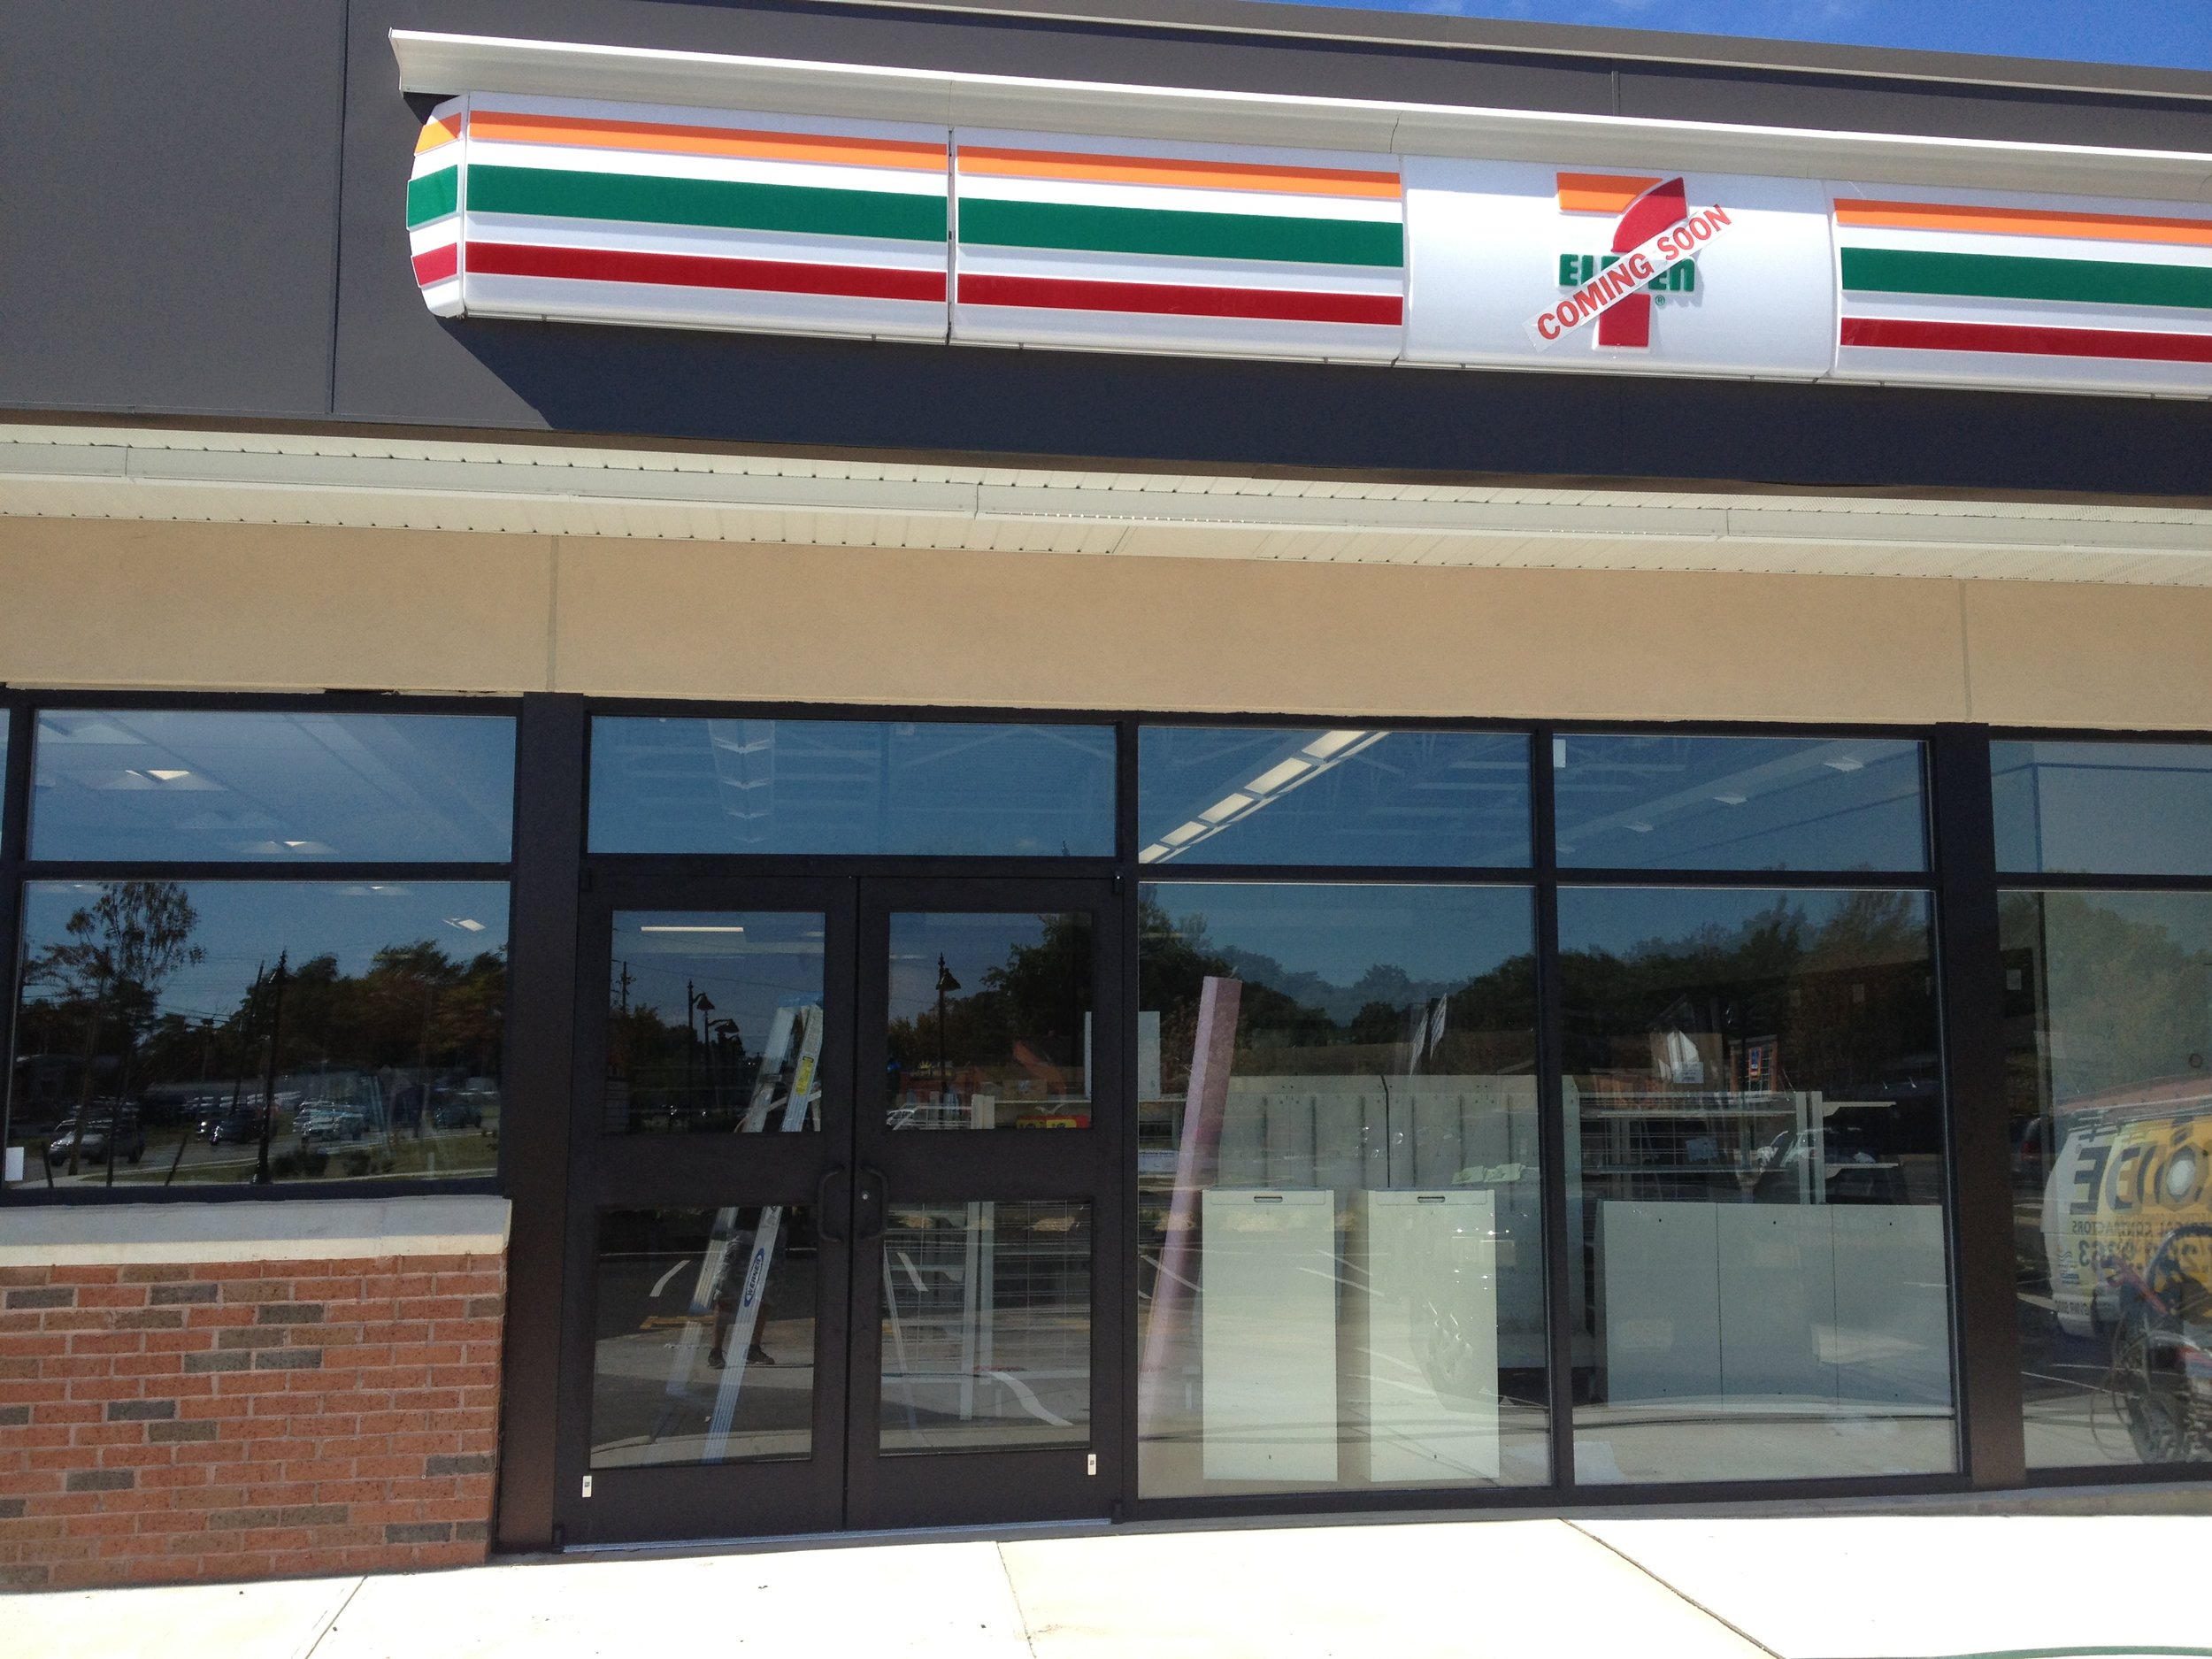 7-Eleven - Cherry Hill, New Jersey